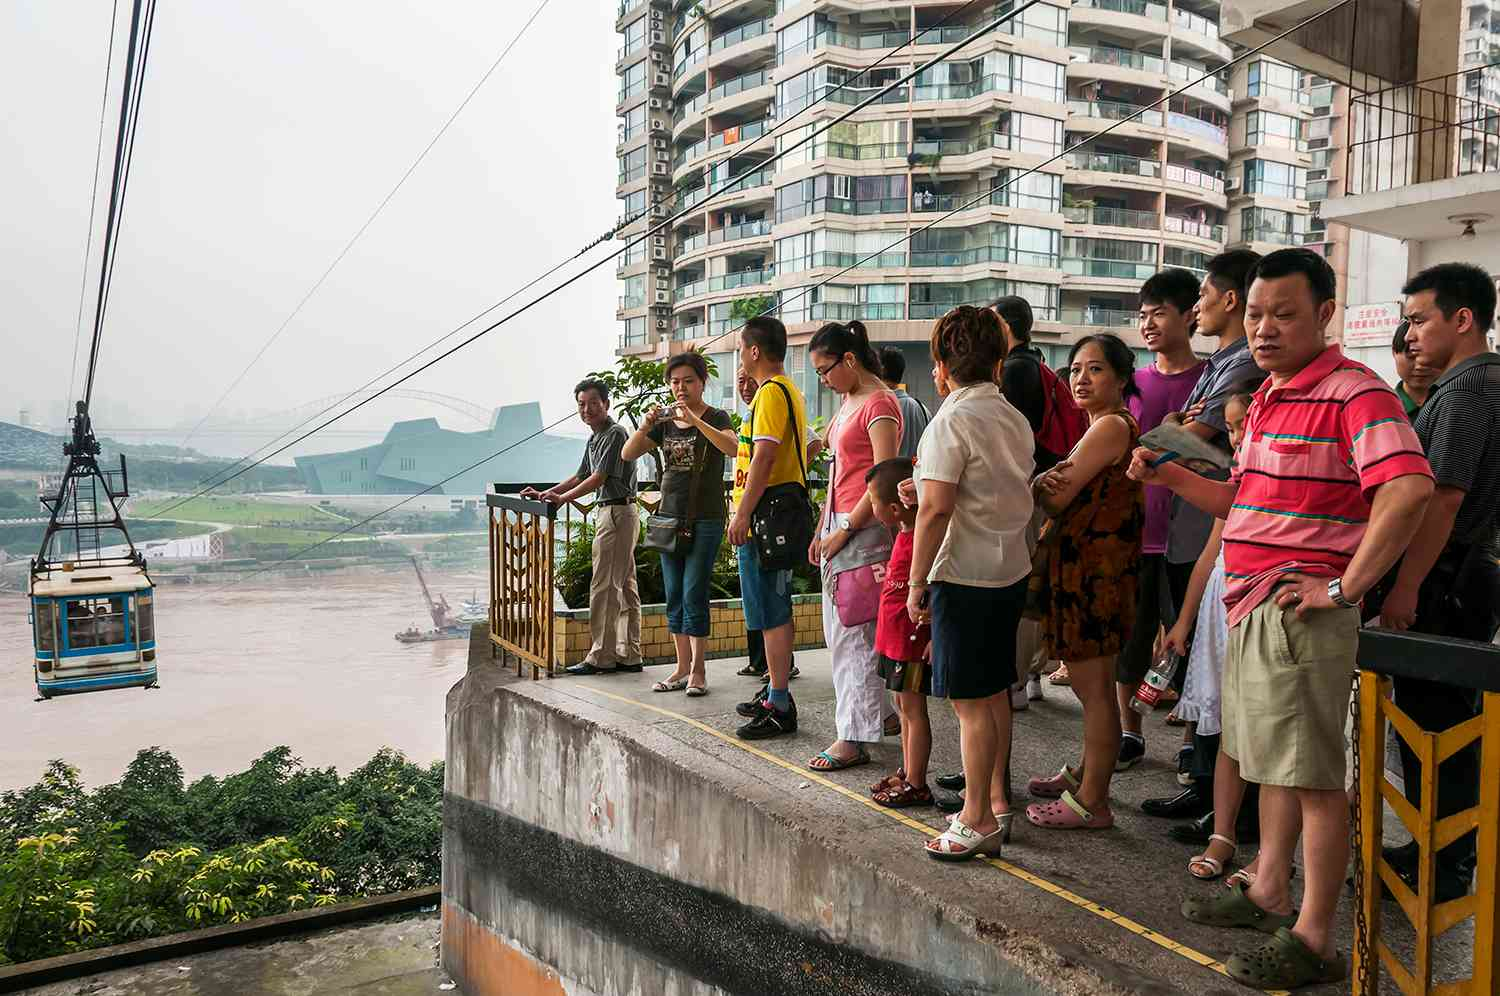 Passengers waiting for the cable car for crossing Yangtze river